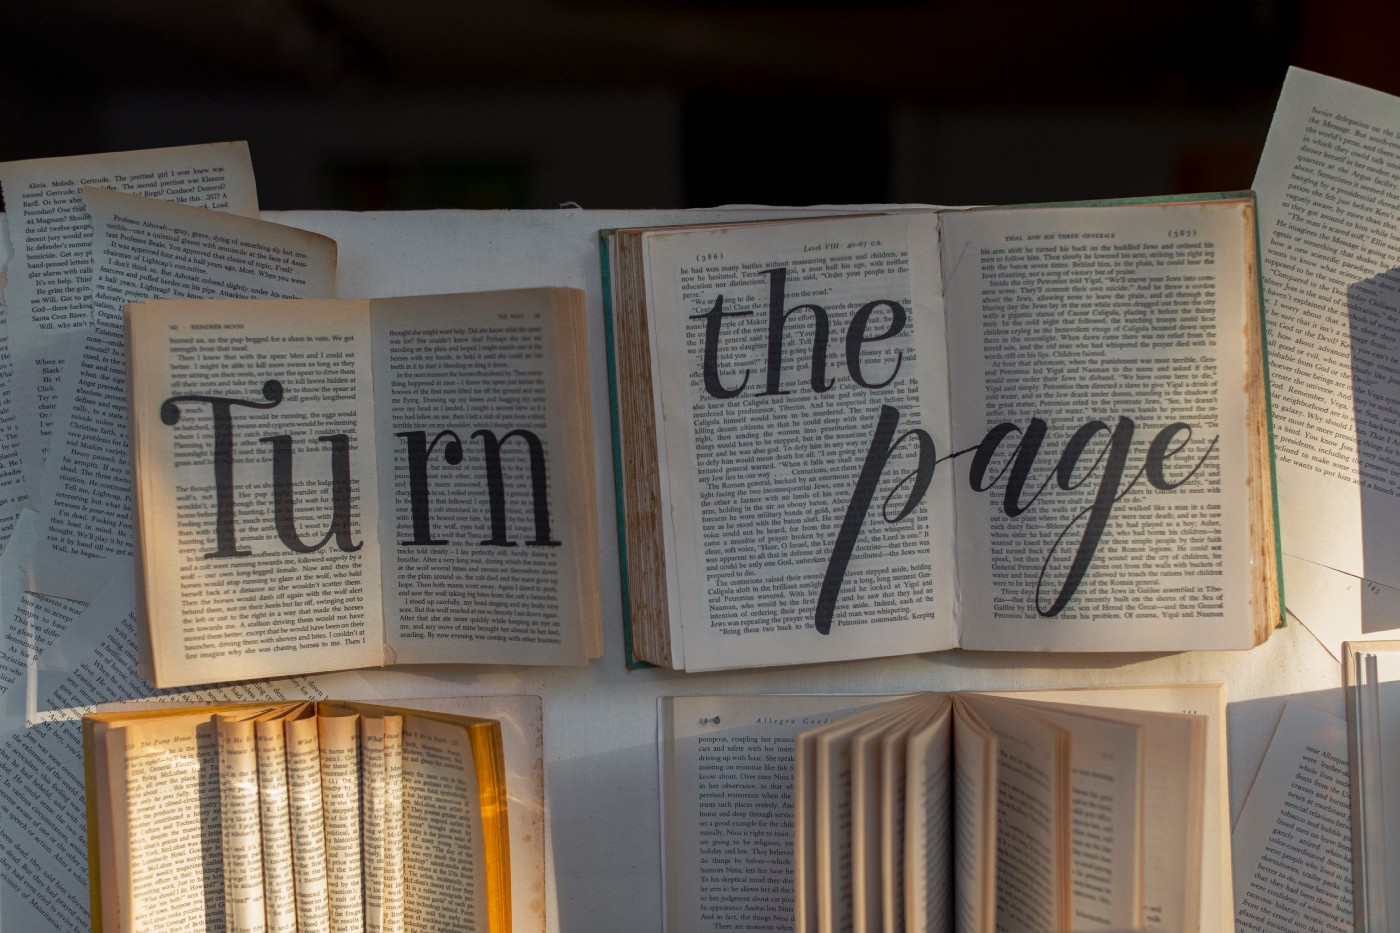 This picture depicts books and loose pages. Written across two of the open books is the phrase 'turn the page'.